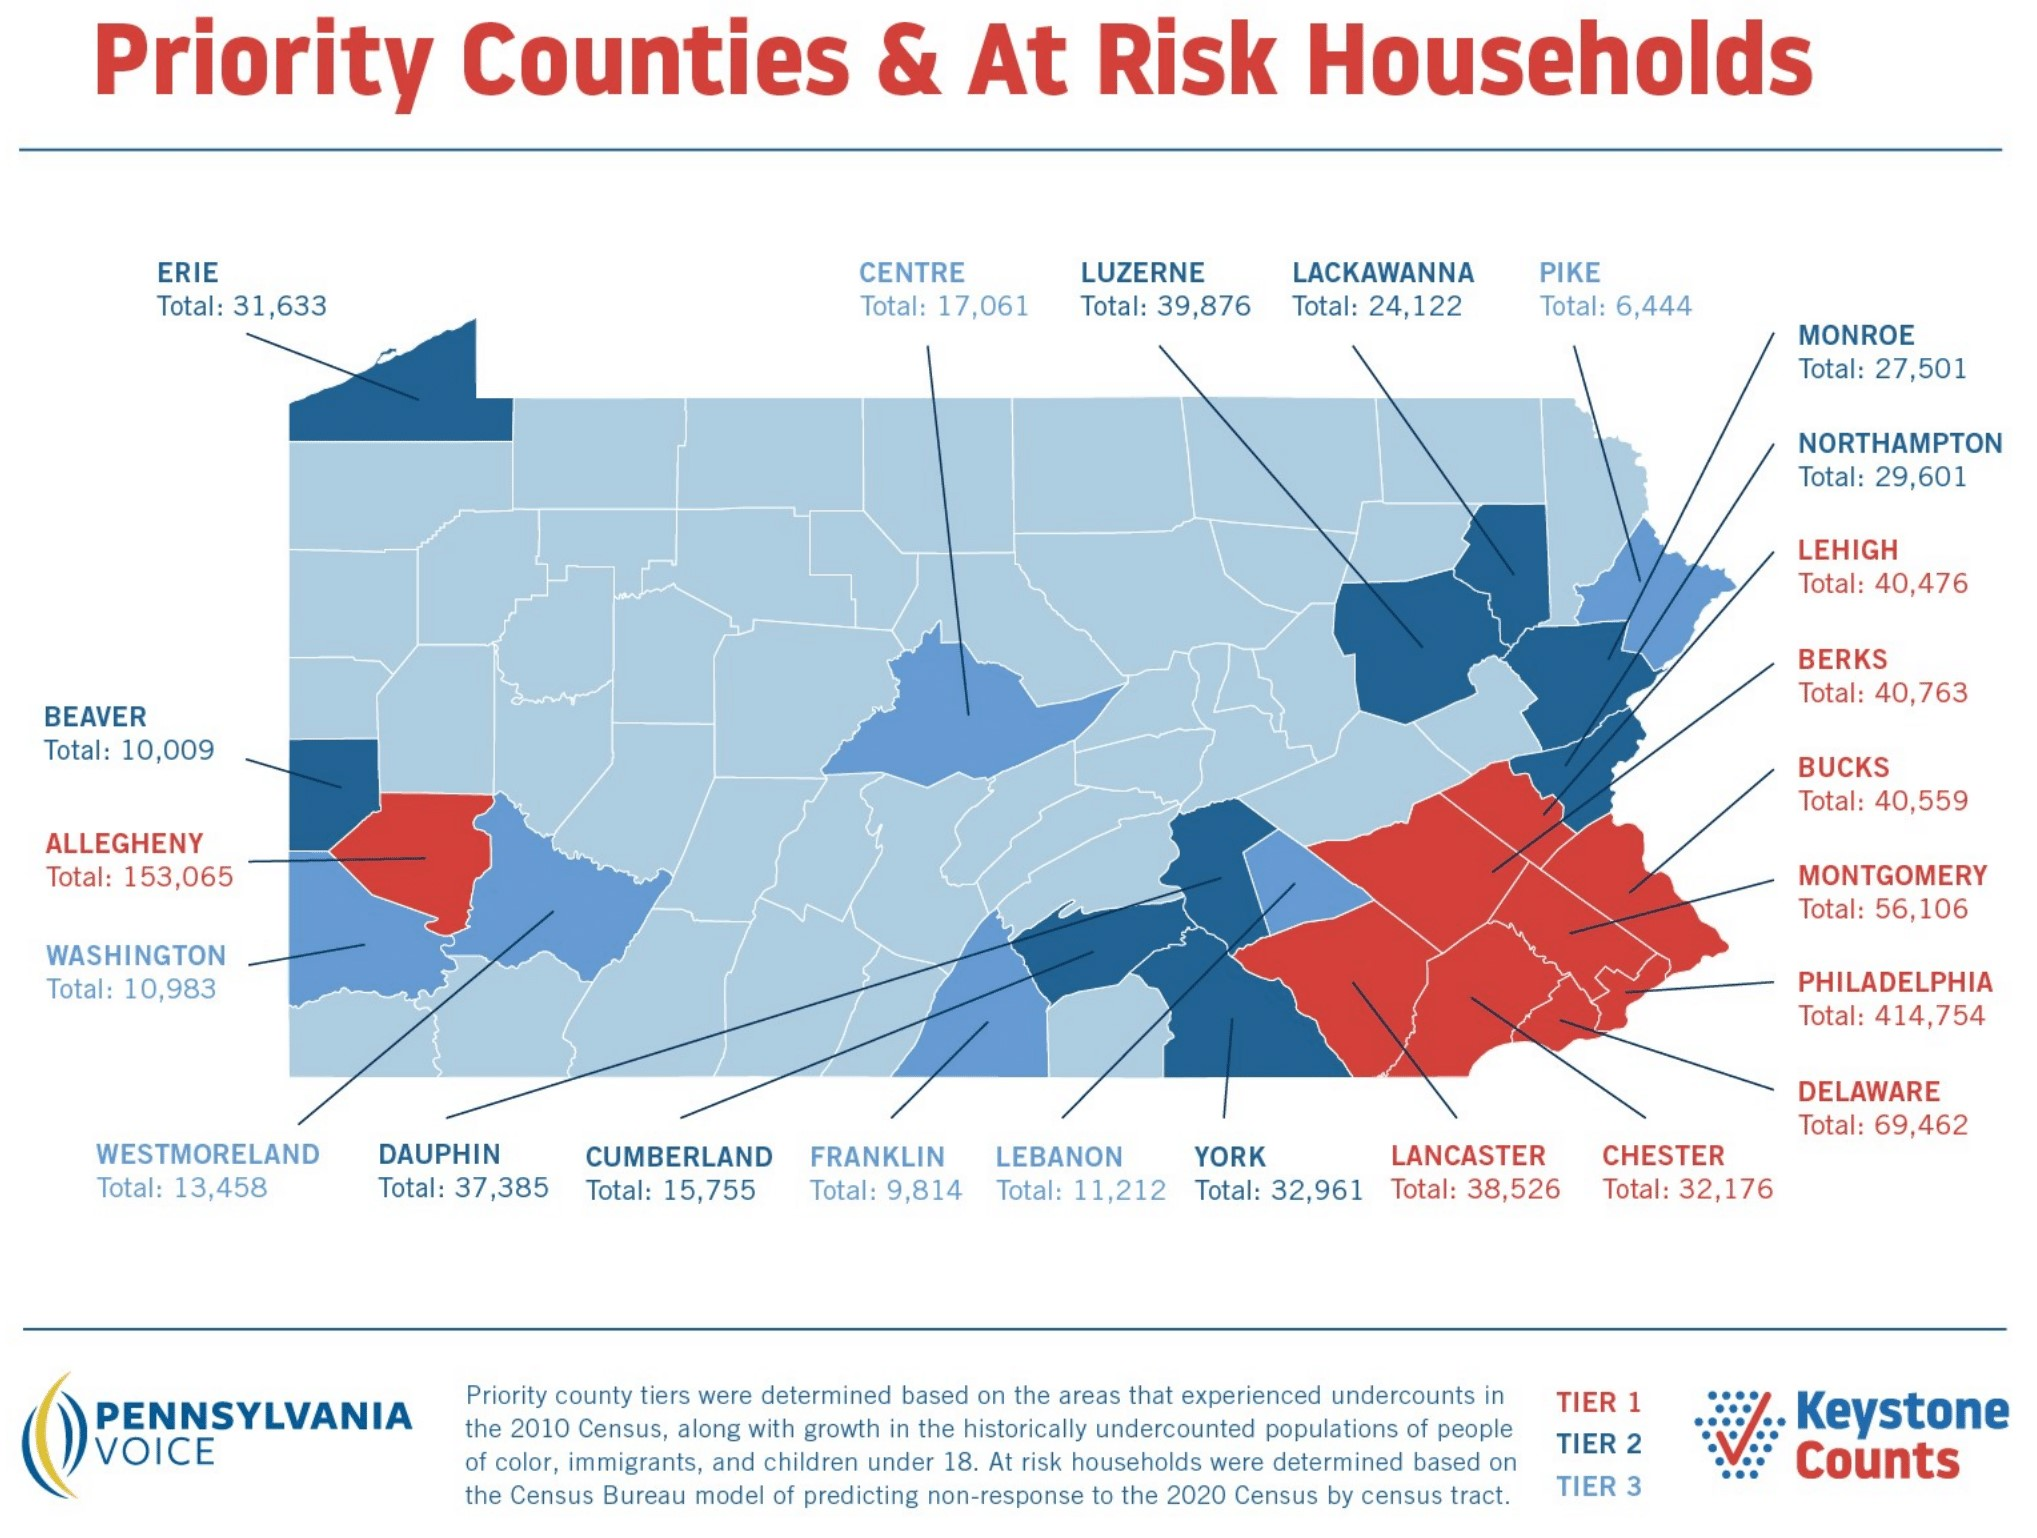 Keystone Counts Priority Counties & At Risk Households-1.jpg